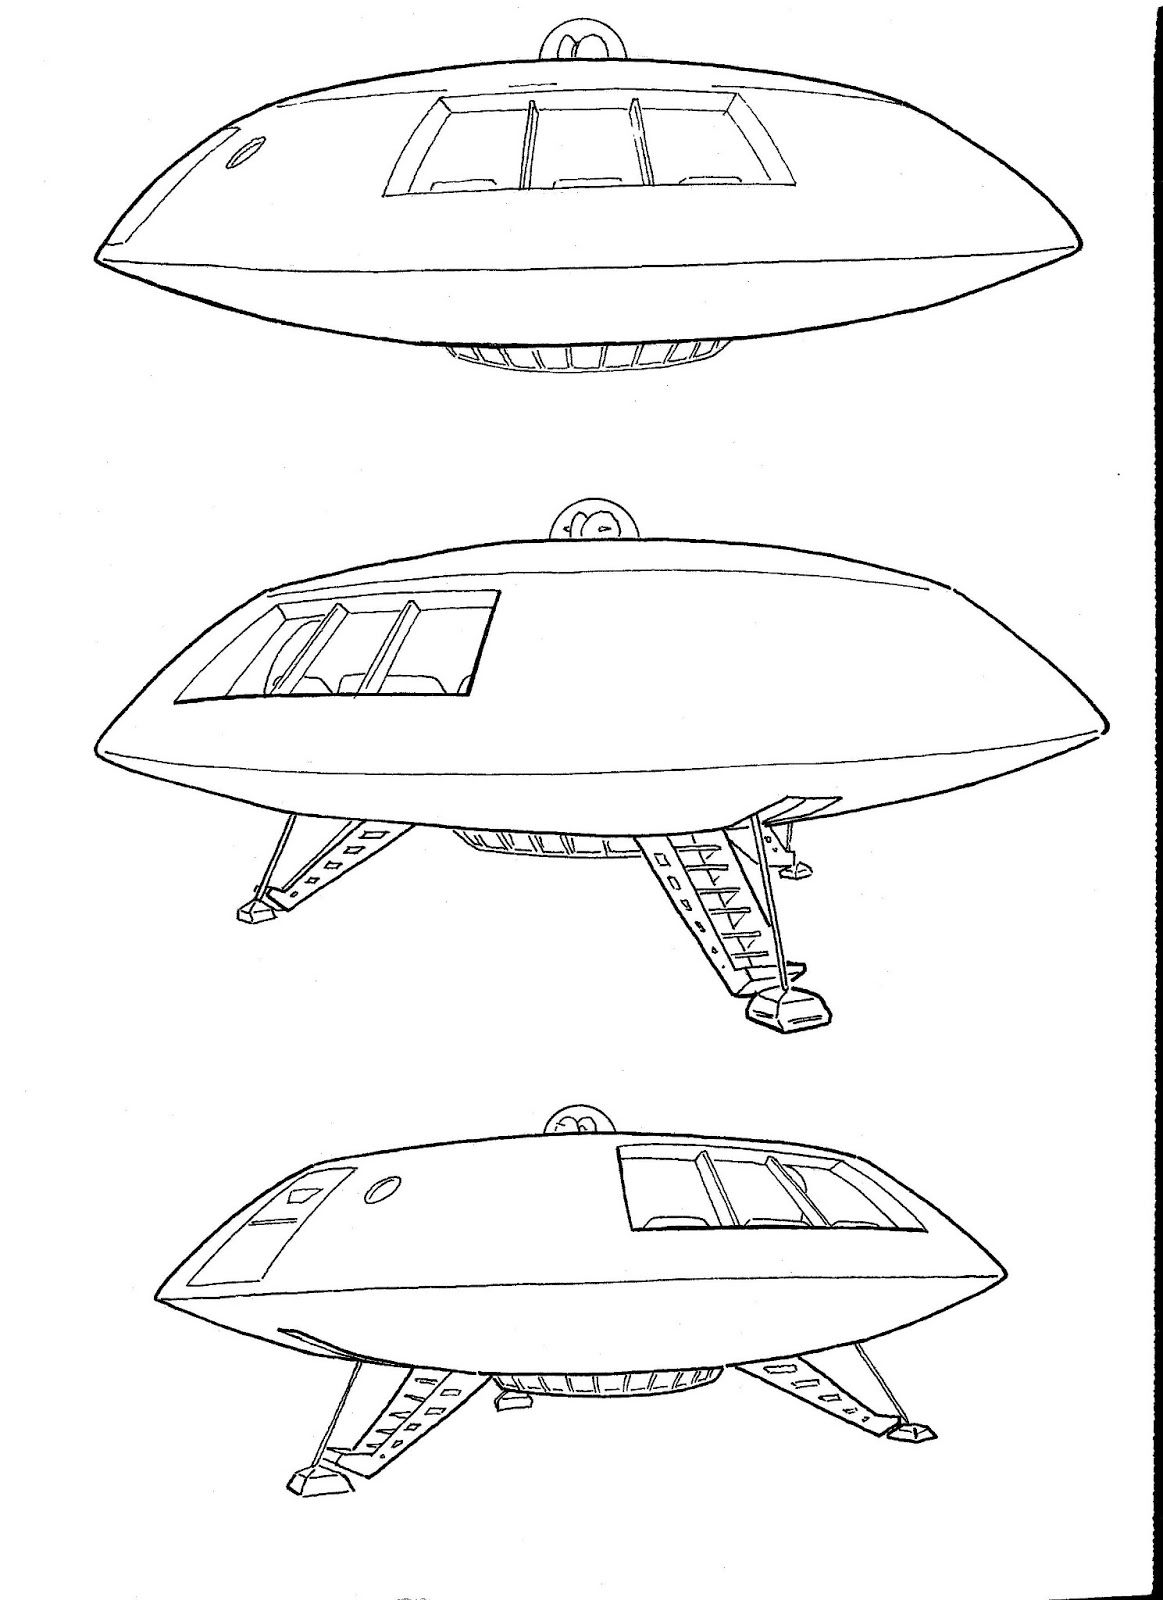 Jupiter 2 Spaceship Drawings